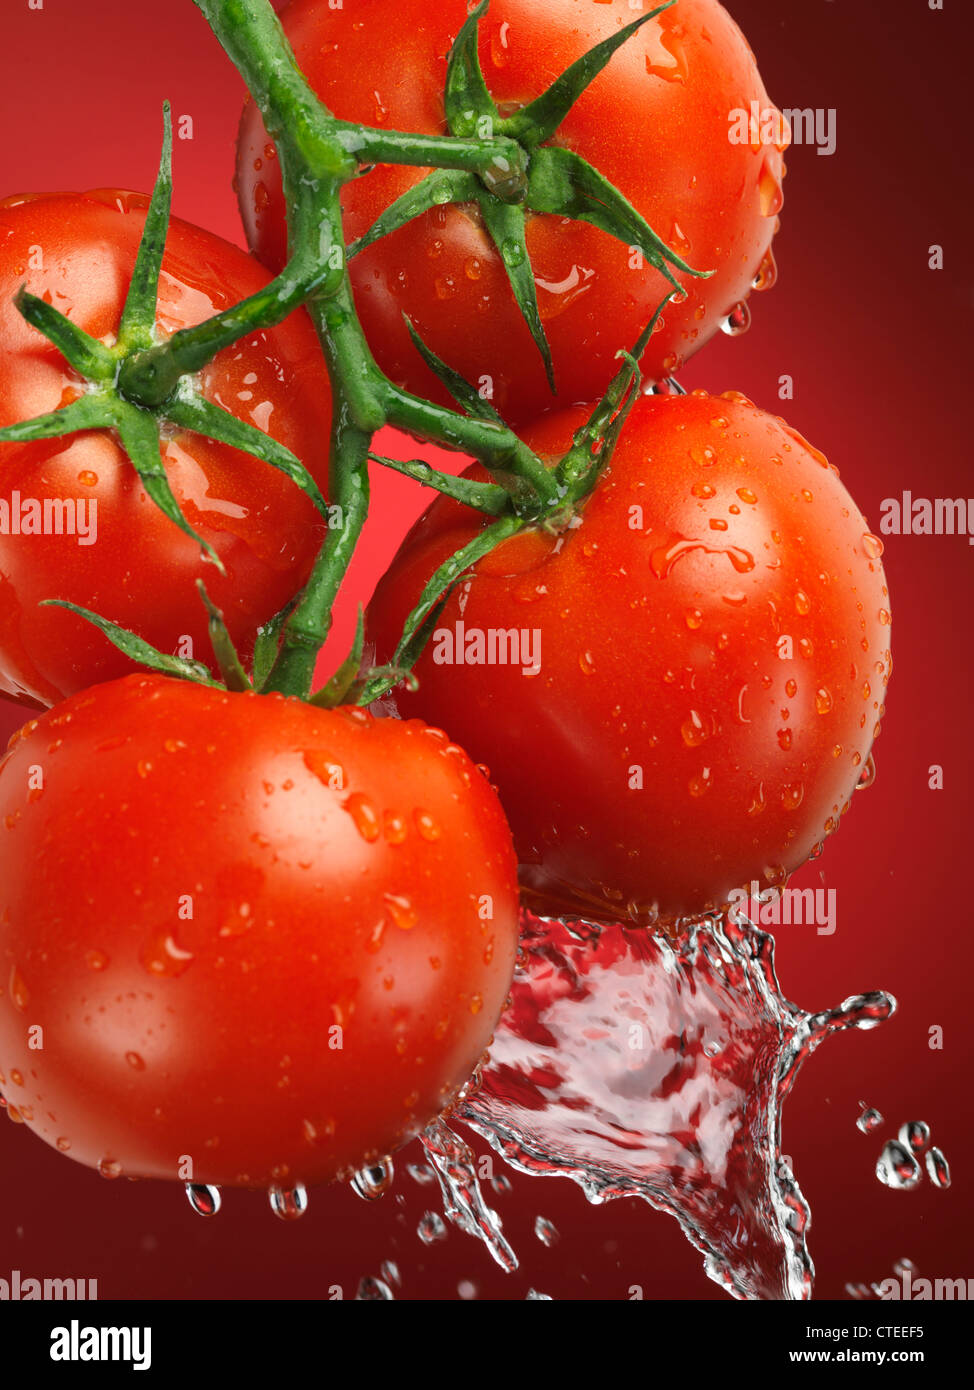 Fresh juicy appetizing tomatoes on the wine splashed with water - Stock Image